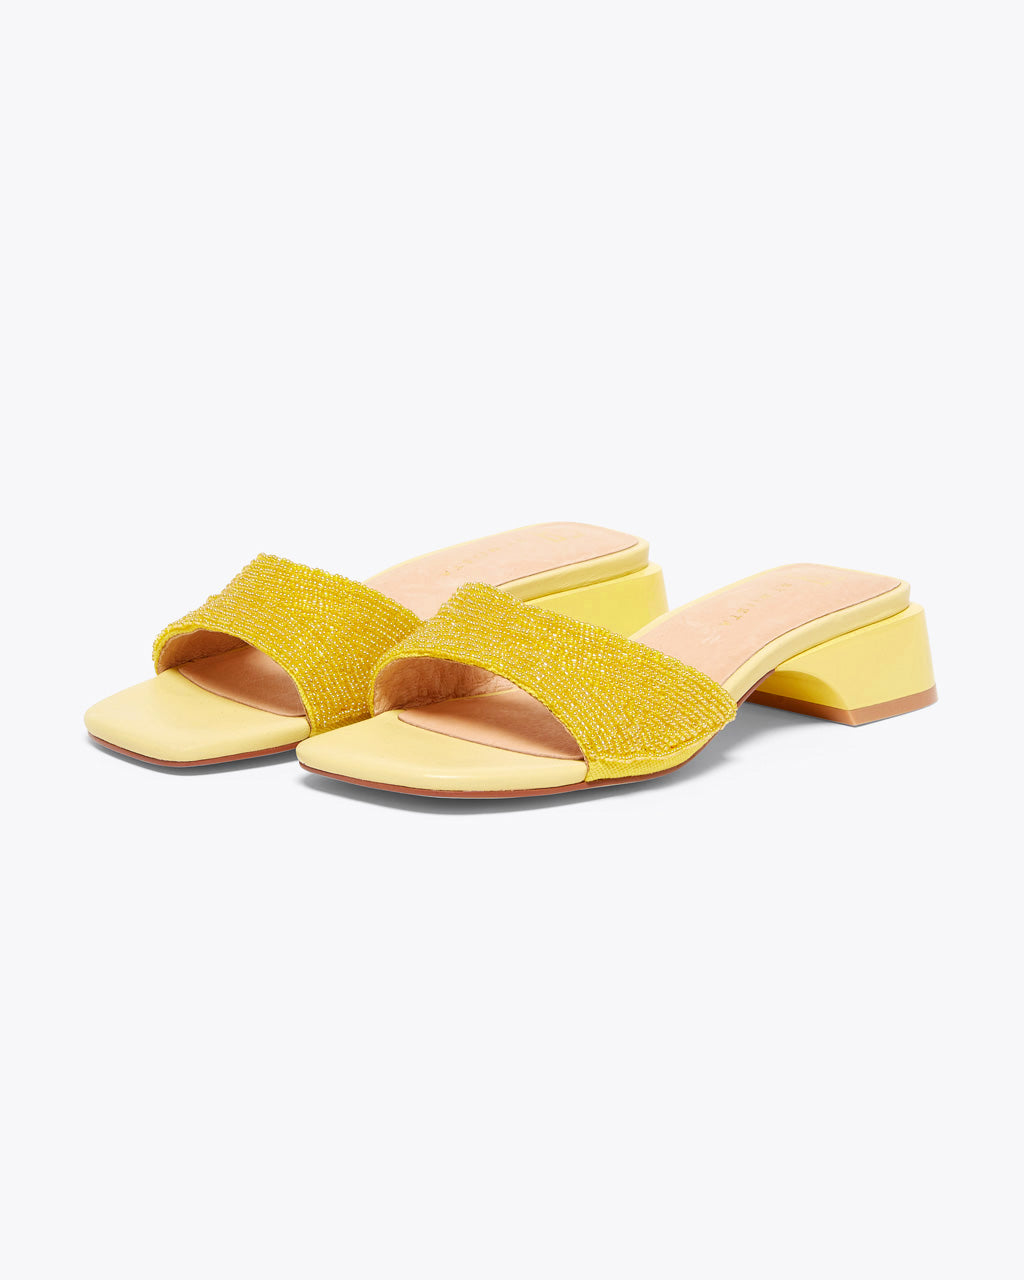 yellow slip on sandal featuring a beaded upper strap and a low heel